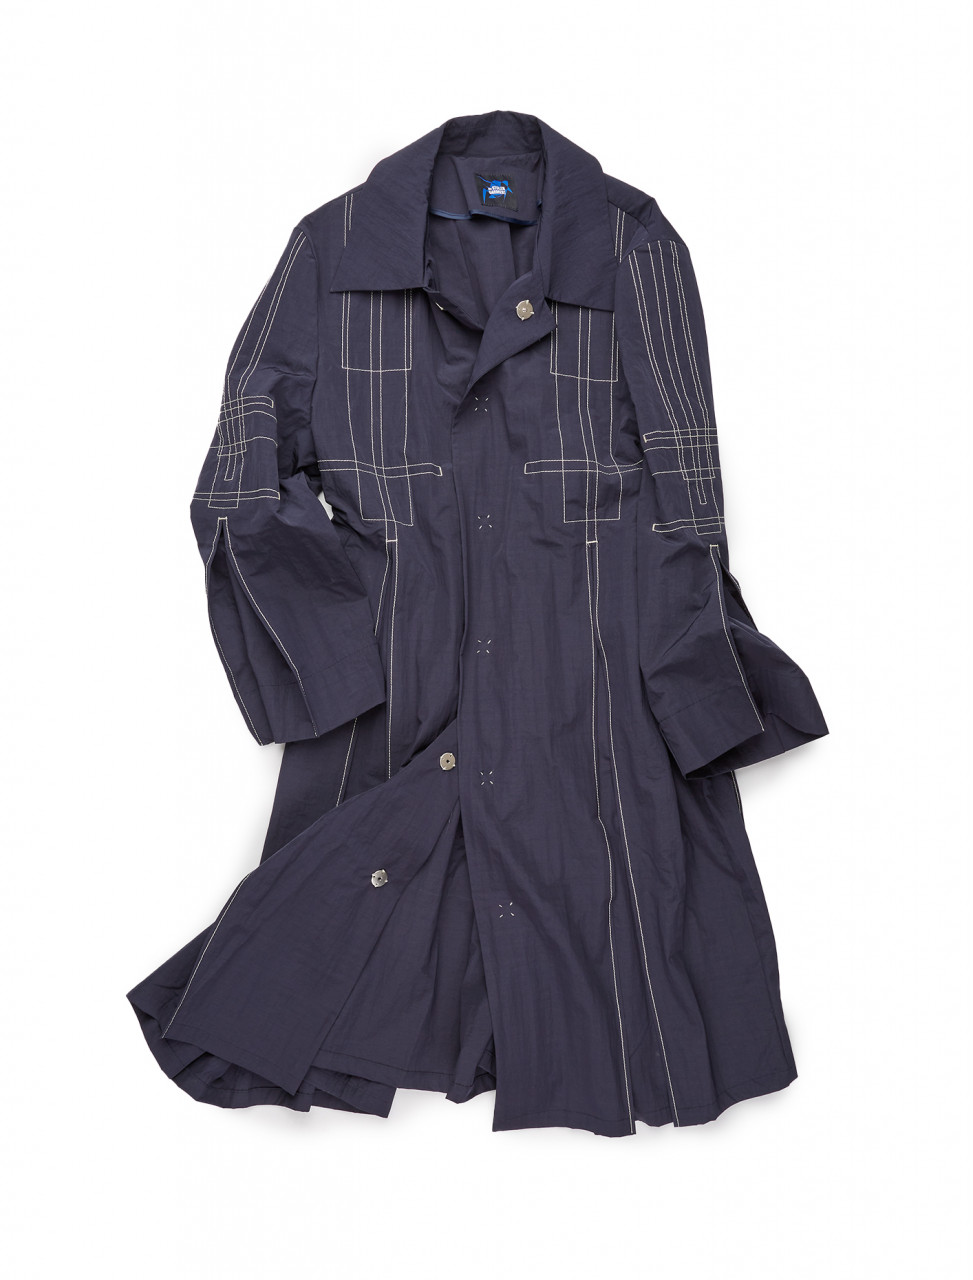 351-PLEASEN THE STOLEN GARMENT COAT NAVY